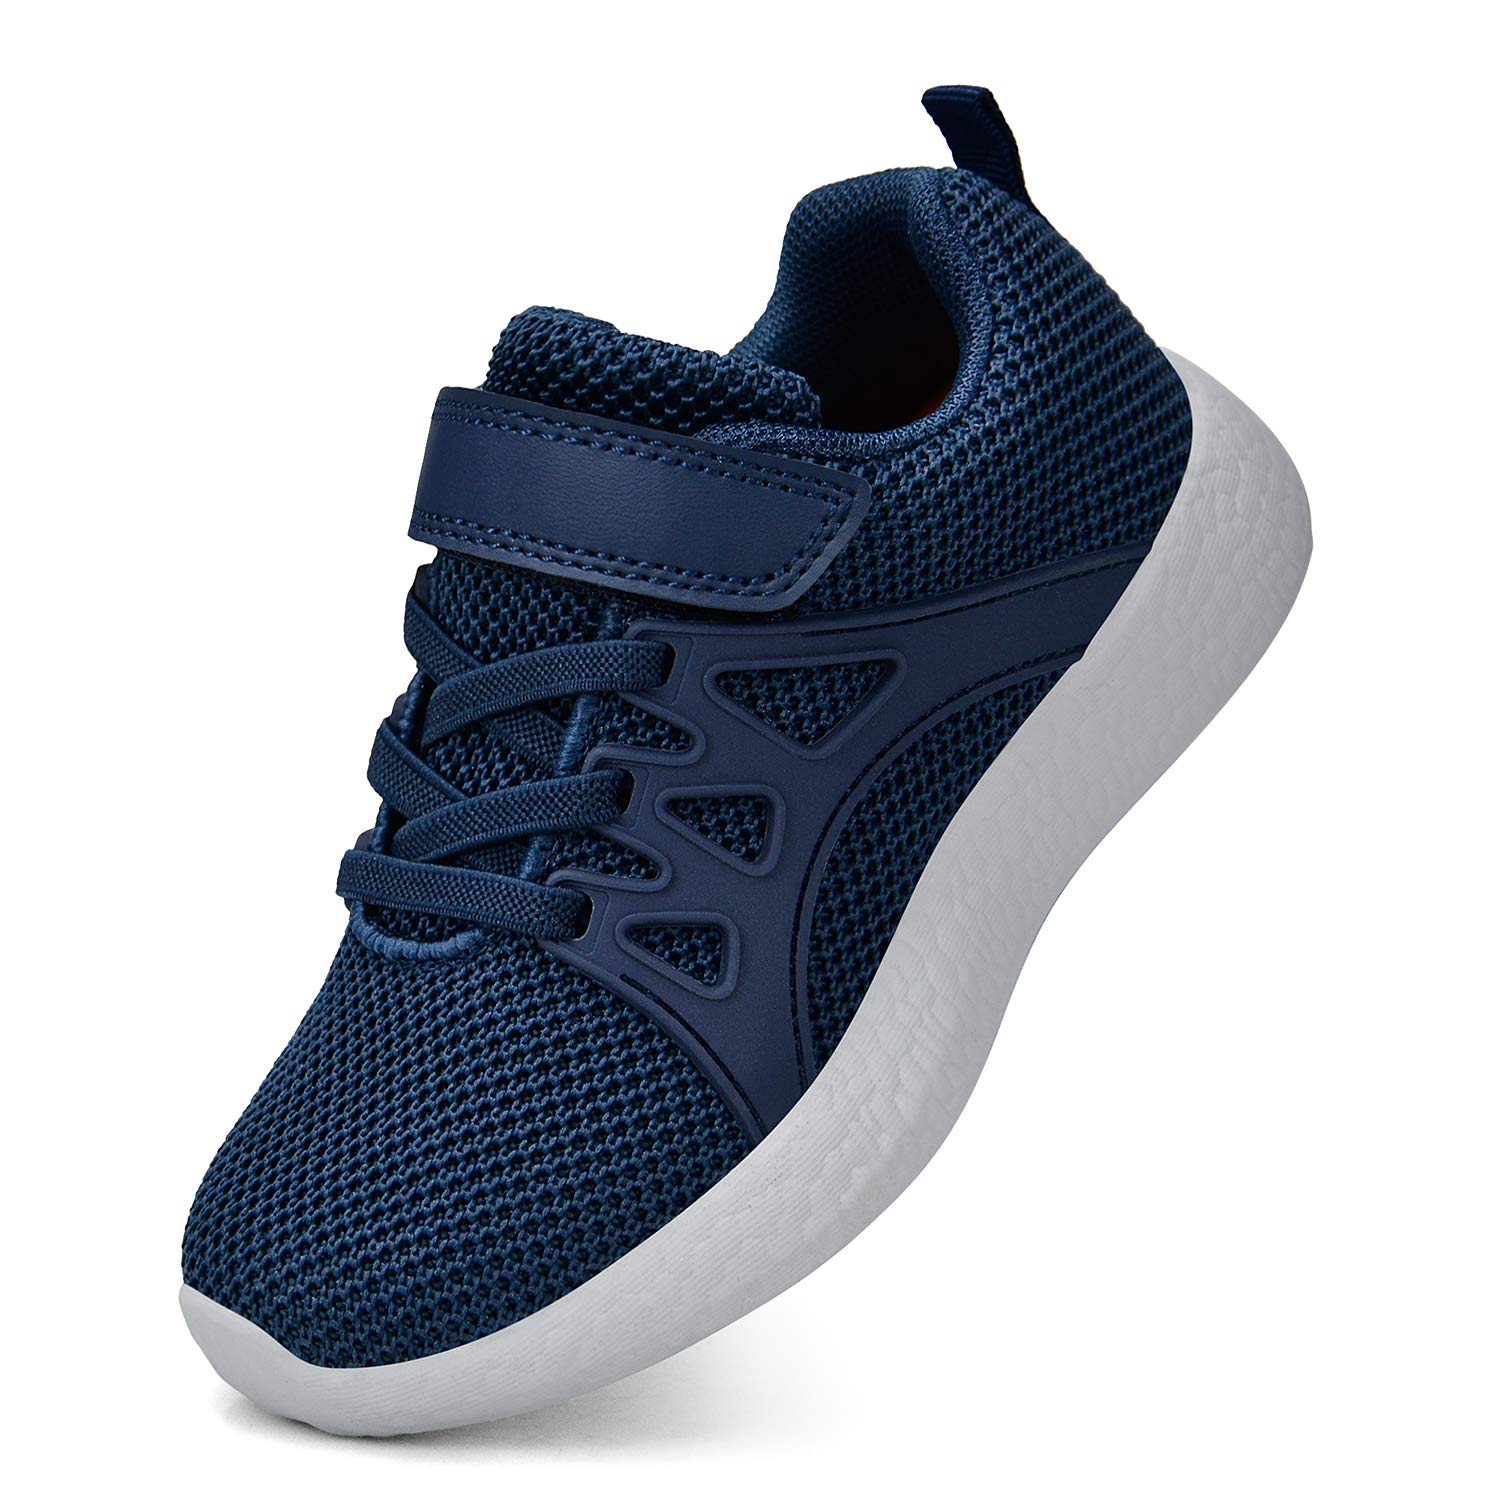 SouthBrothers Boys Shoes for Toddler Breathable Running Sneakers Blue Size 1.5 M US Little Kid